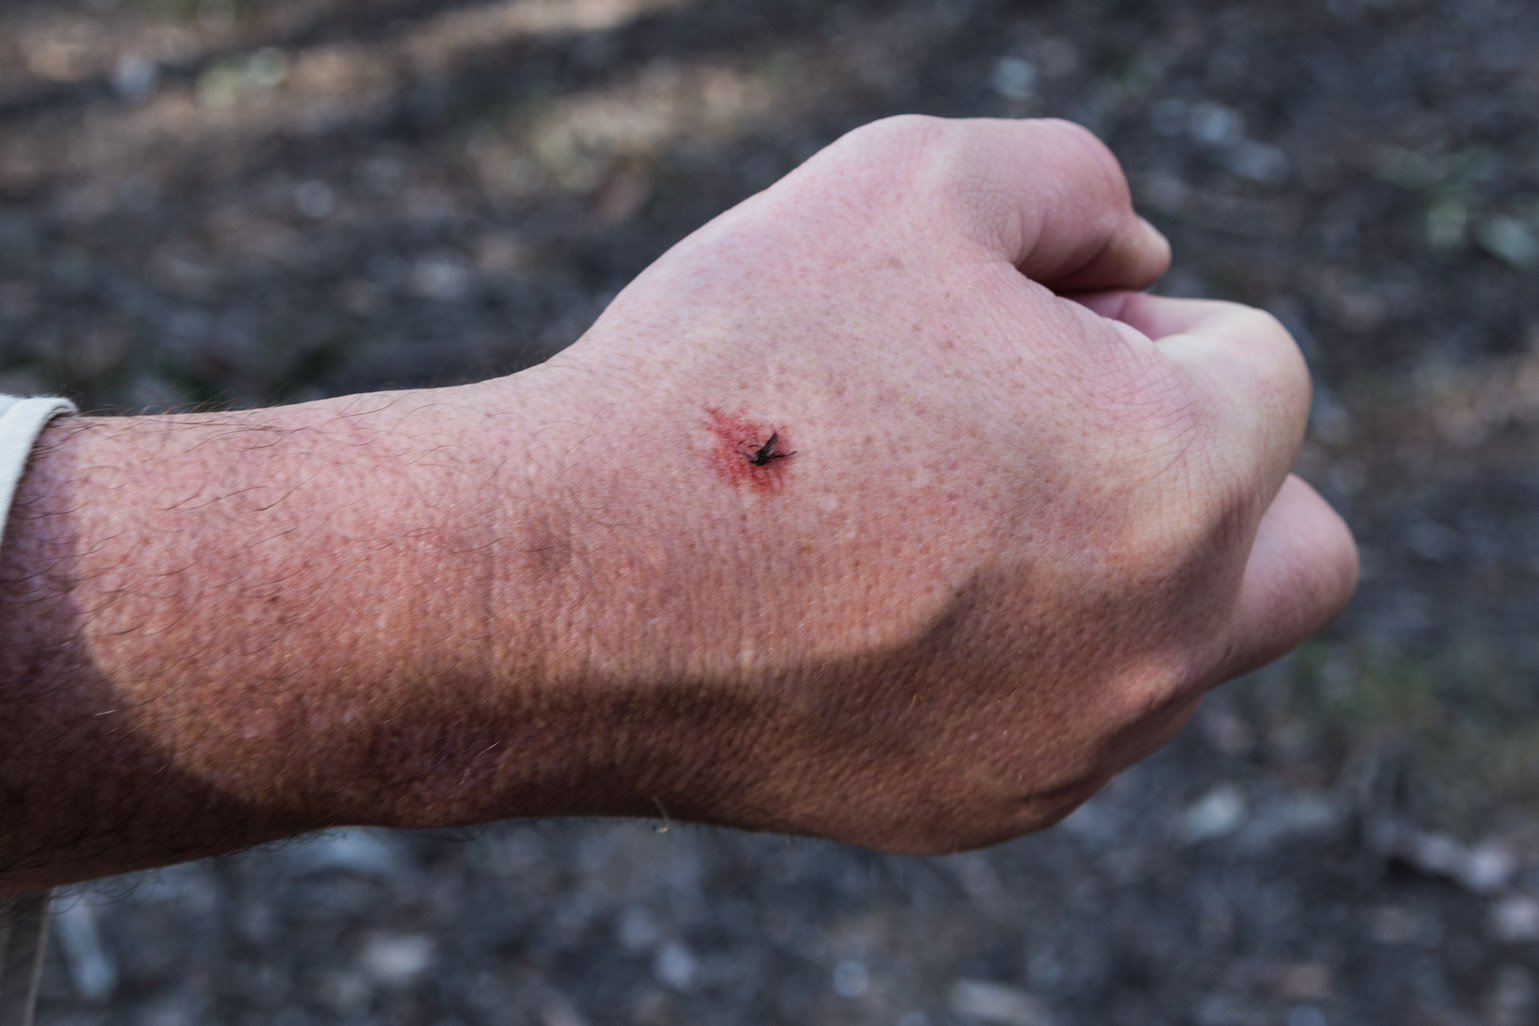 blood-from-mosquito-bite